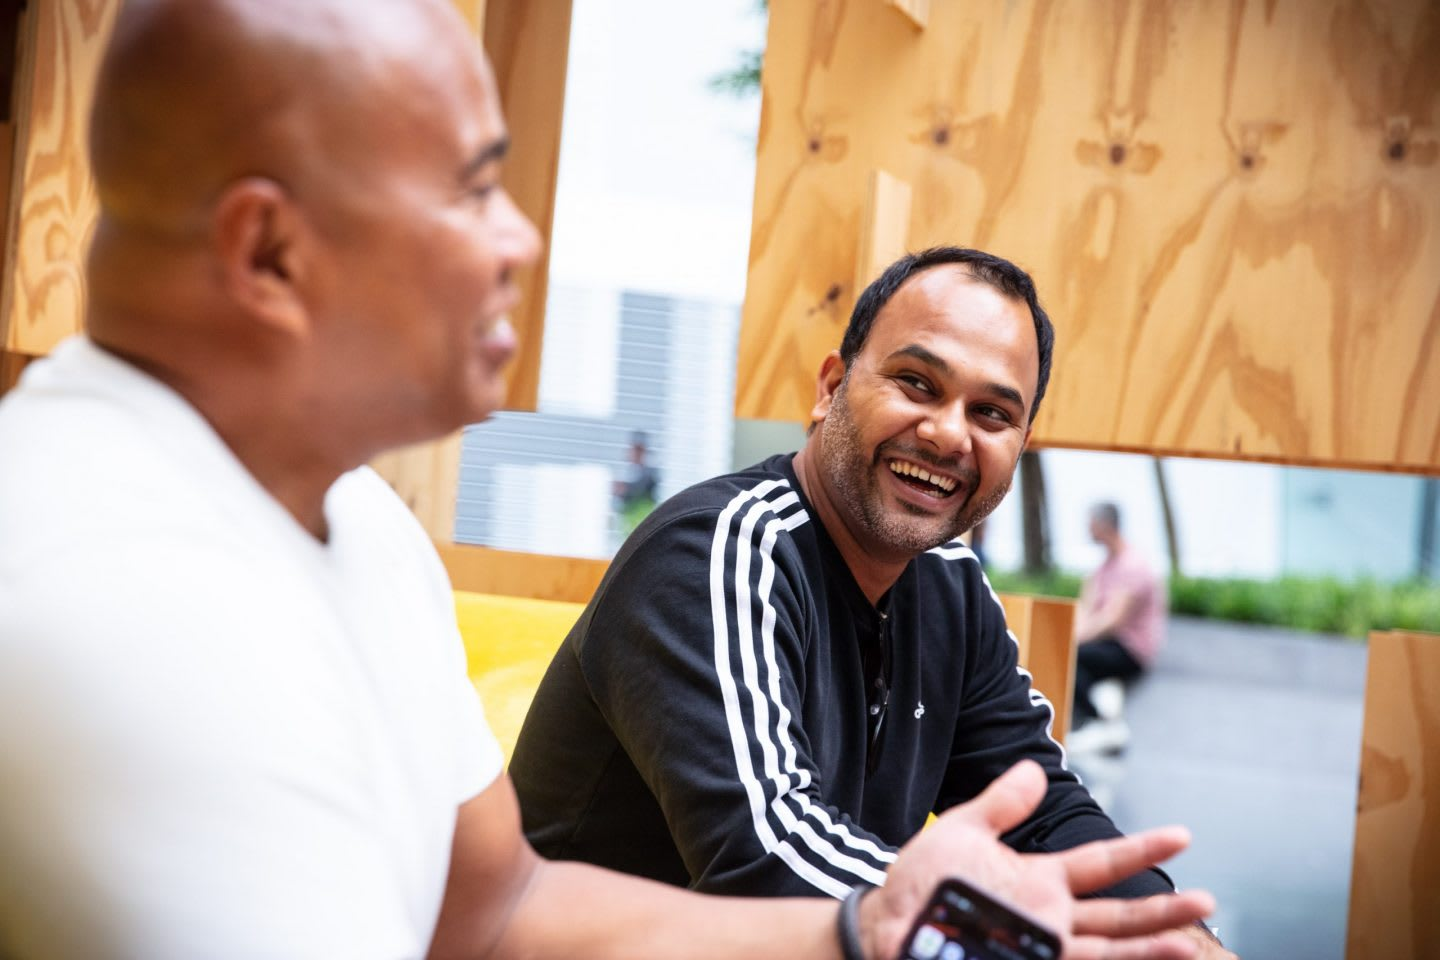 Man wearing black adidas sweatshirt talking and smiling with man in a white t-shirt, adidas, employees, workplace, culture, Herzogenaurach, HQ